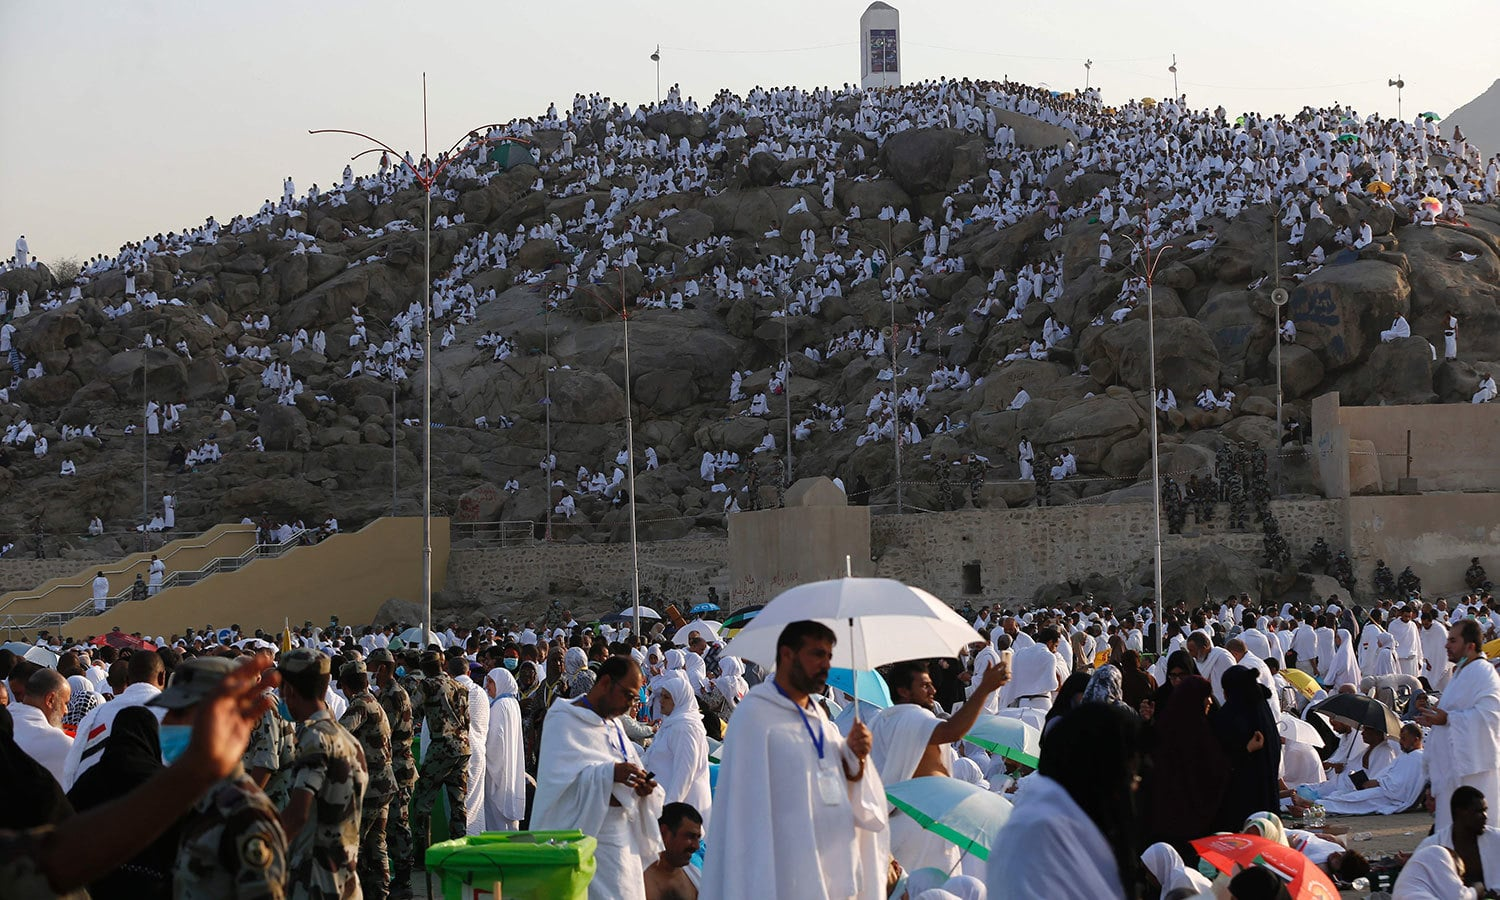 Pilgrims arrive at Mount Arafat where the Prophet Muhammad (PBUH) delivered his final sermon. — AFP